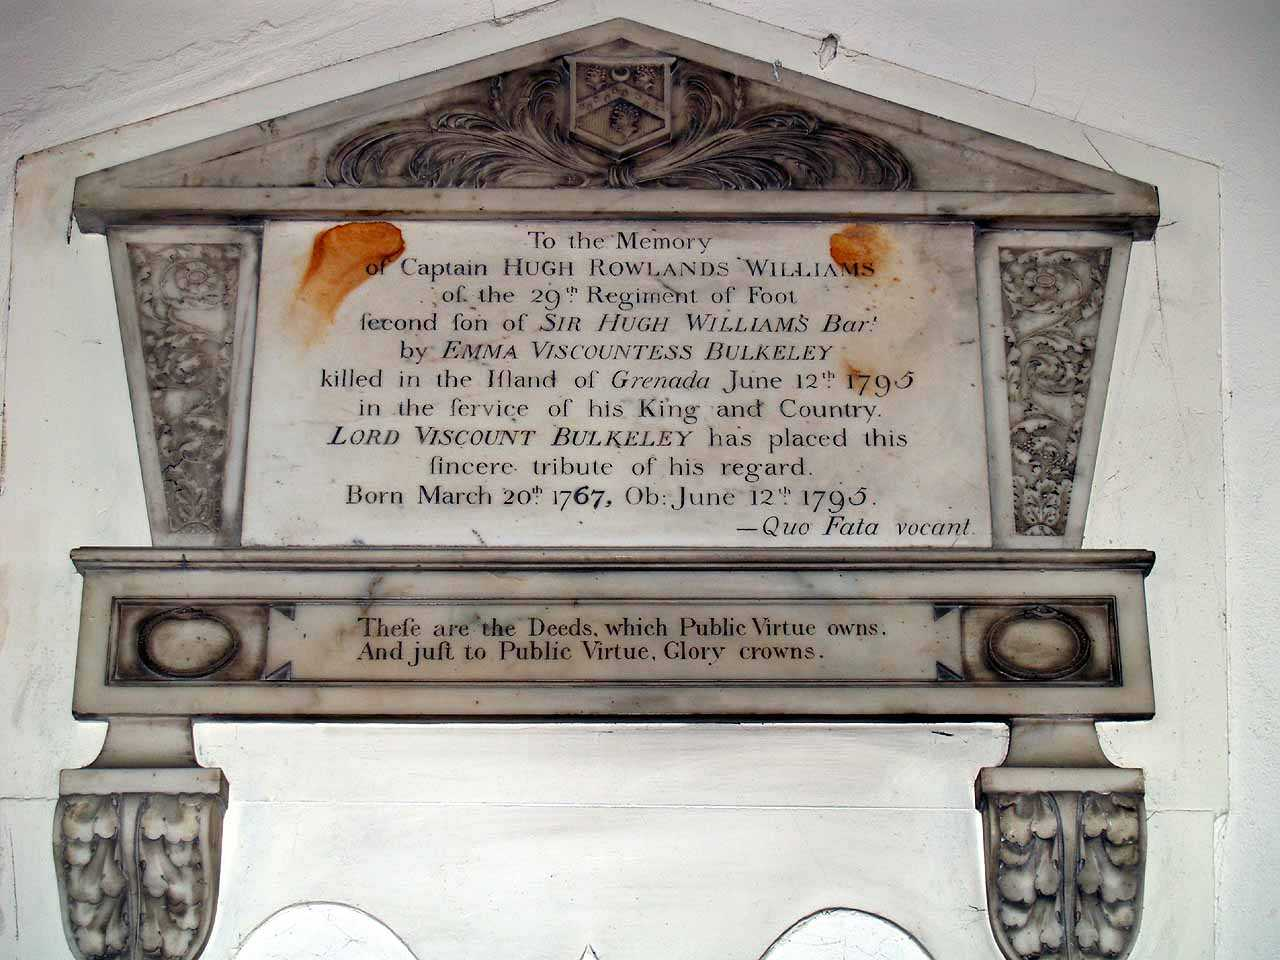 Anglesey, Beaumaris, St Mary's Church, Memorial to Captain Hugh Rowlands Williams 29th Regiment of Foot died Grenada died 1795 aged 28